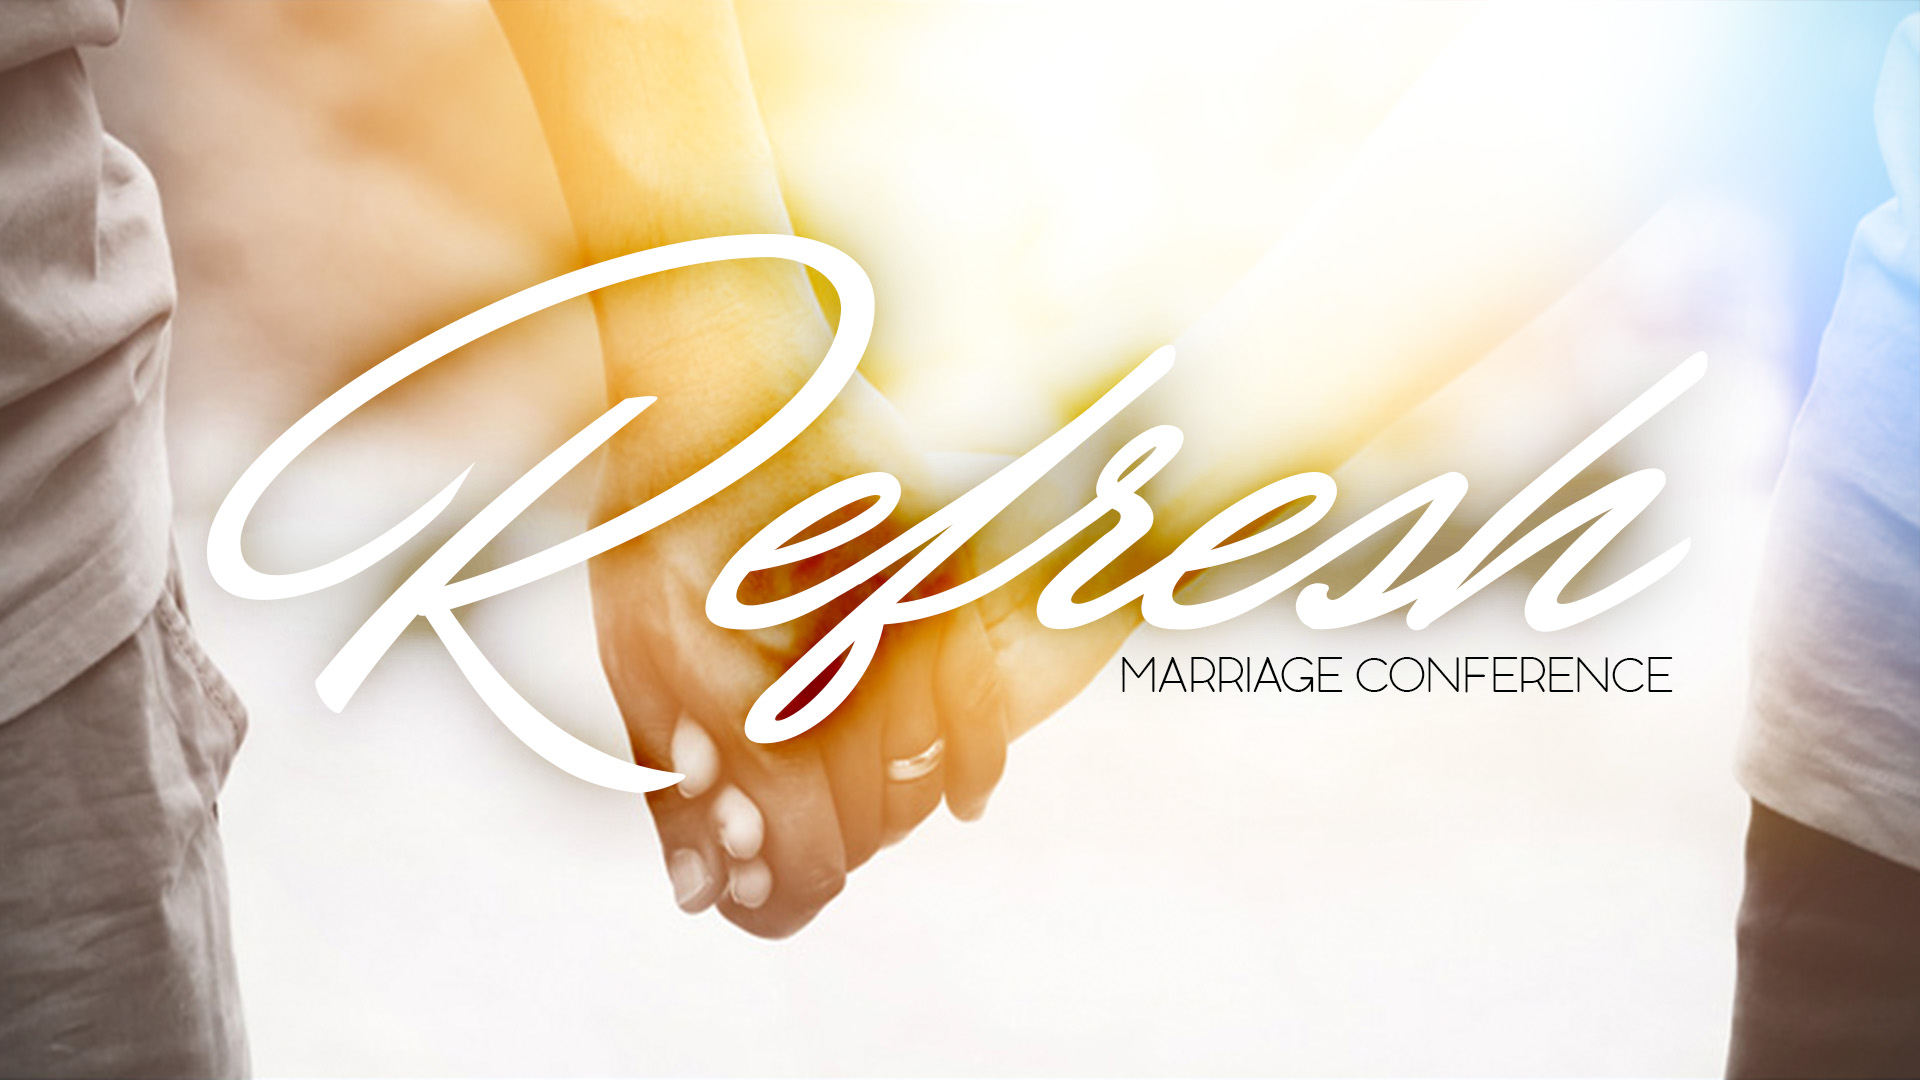 Refresh Marriage Conference logo